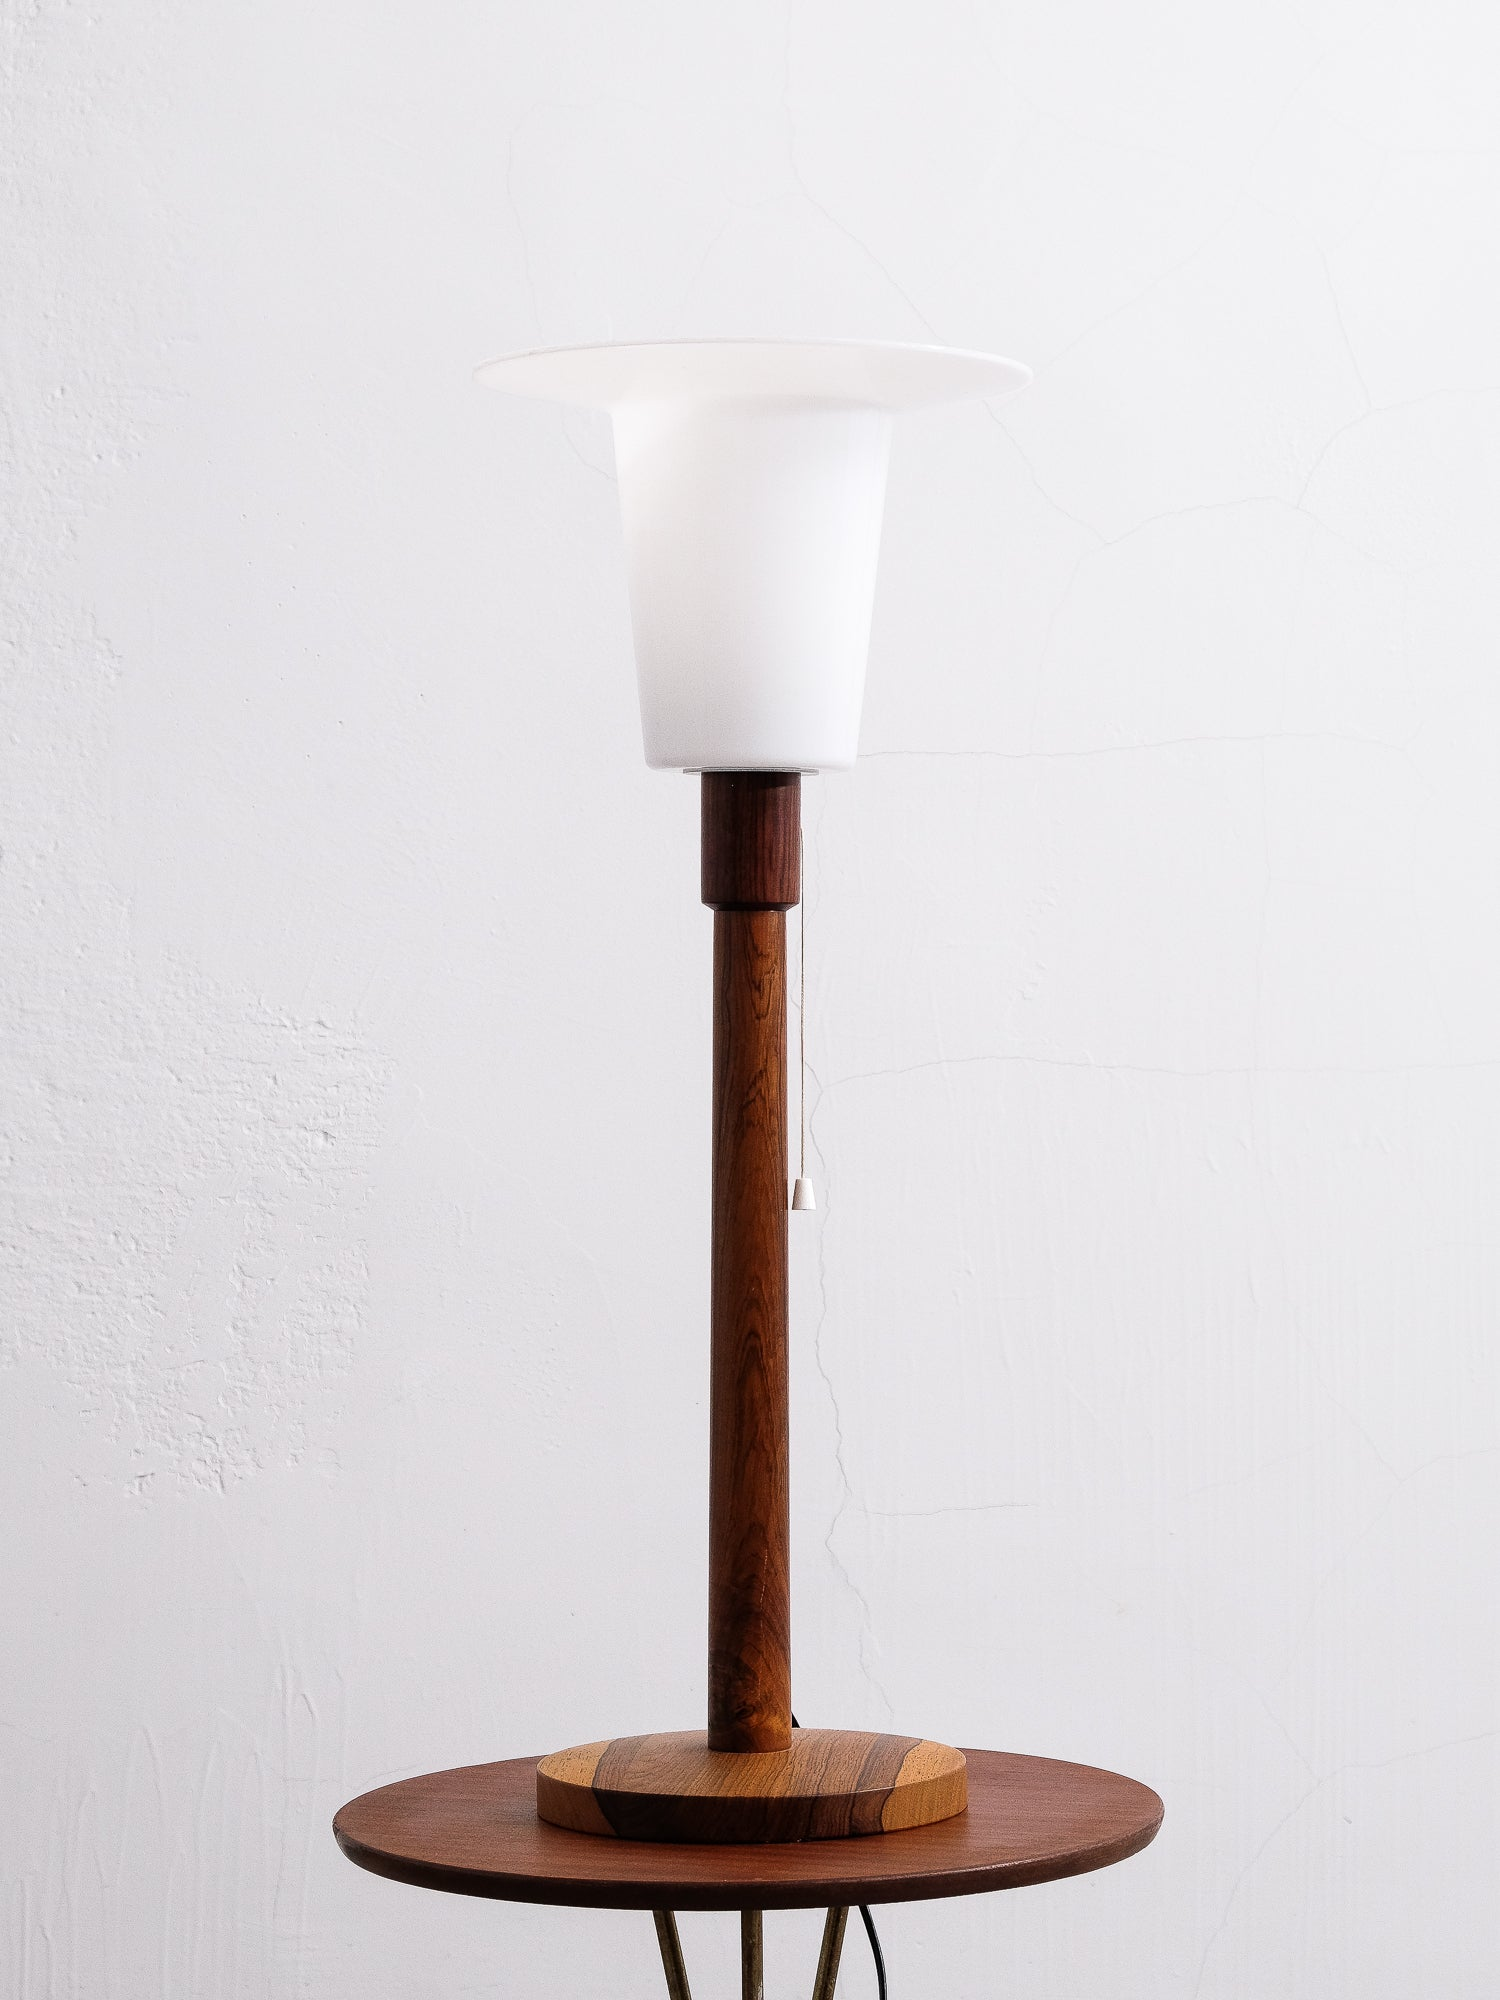 Table Lamp in Rosewood by Uno & Östen Kristiansson for Luxus, Sweden